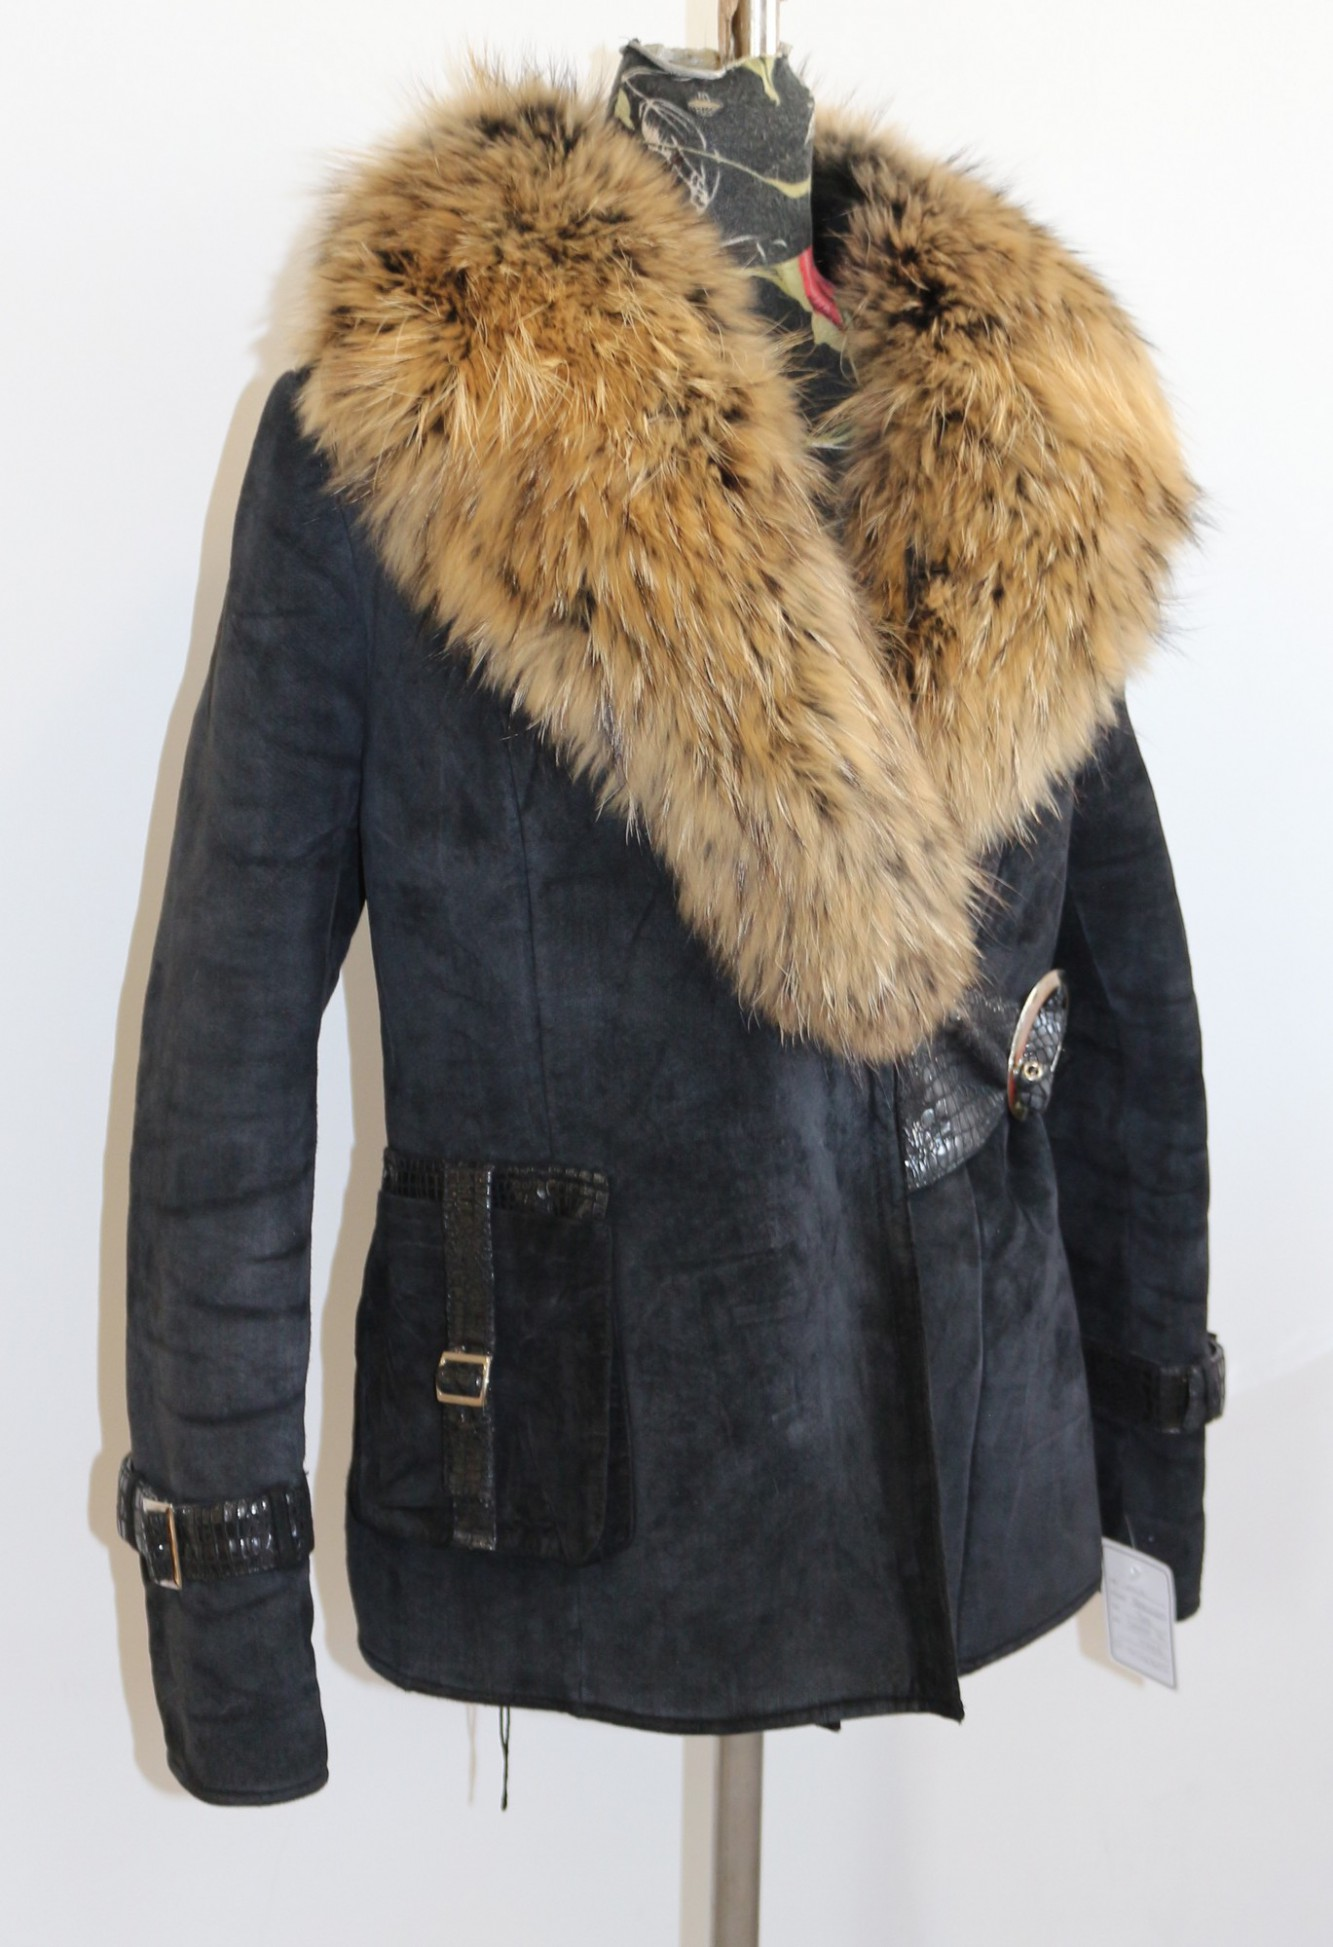 jacke mit pelz herren woolrich parka mit kapuze aus pelz grieder by h4f herren arctic winter. Black Bedroom Furniture Sets. Home Design Ideas